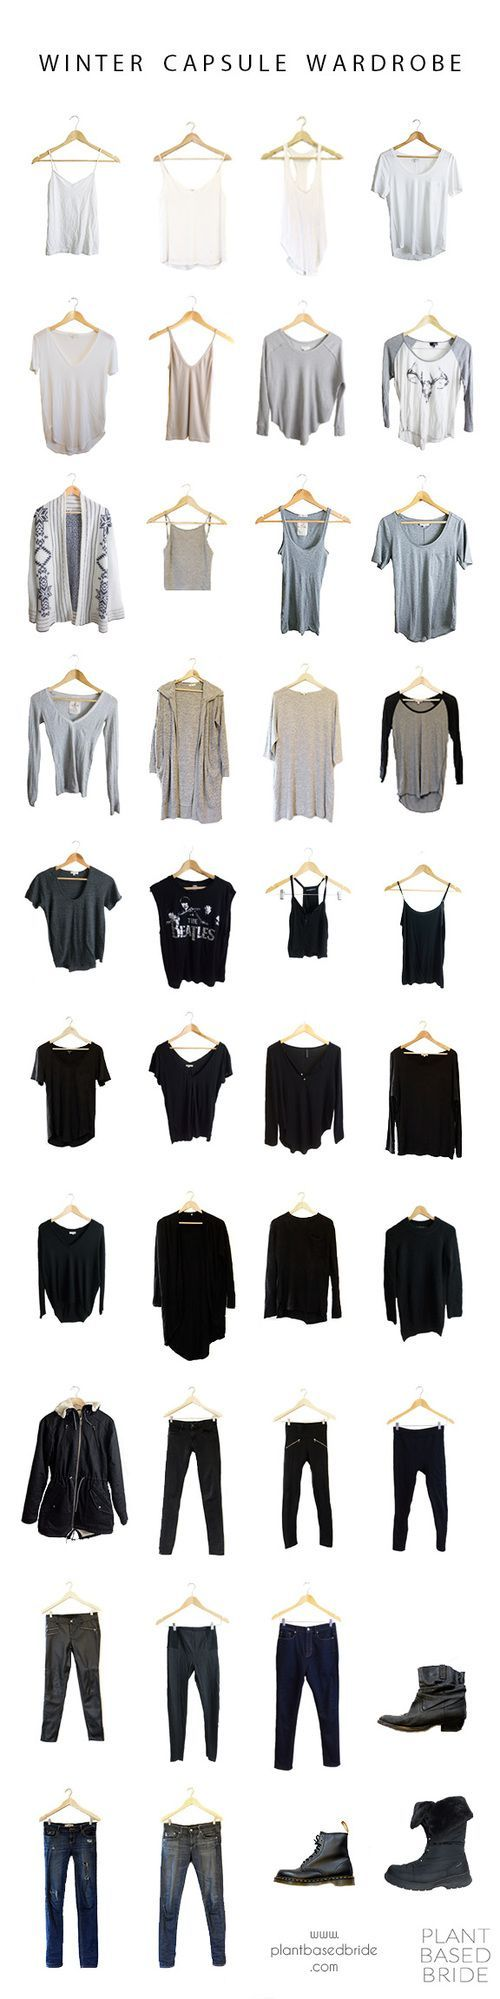 Minimal, neutral, vegan winter capsule wardrobe for 2016!  Check out the blog for the details of each item and for my fall capsule wardrobe recap!